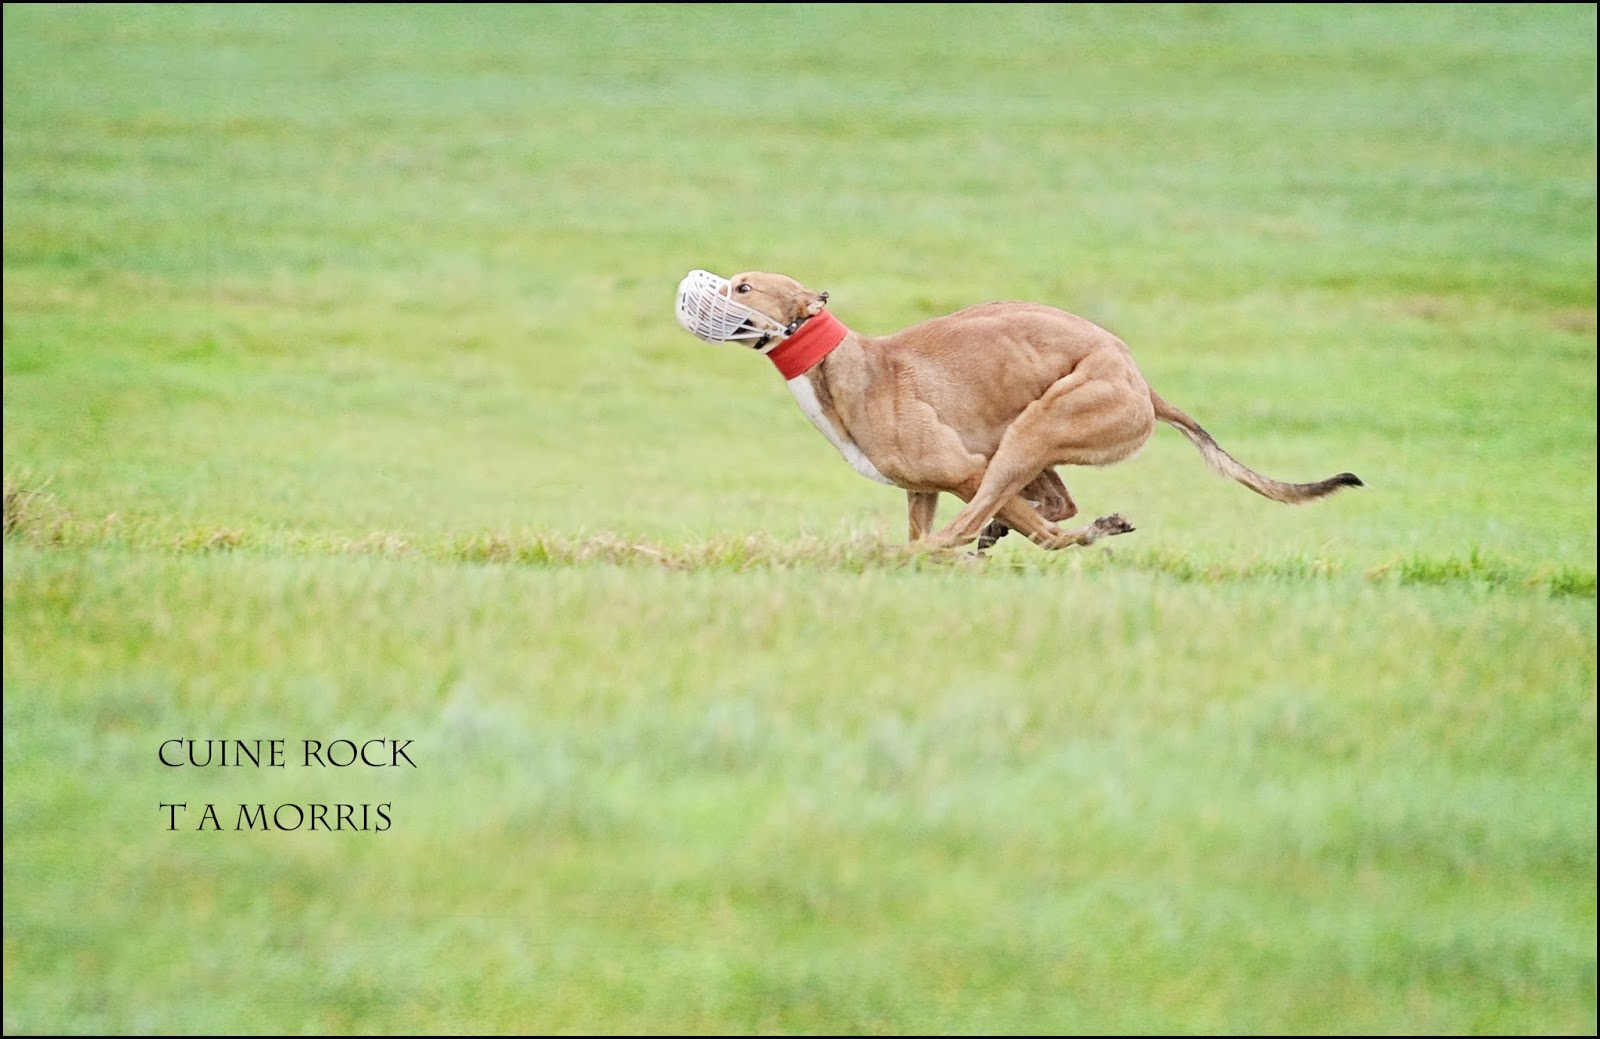 Coursing diary clonmel 2014 for Cuine